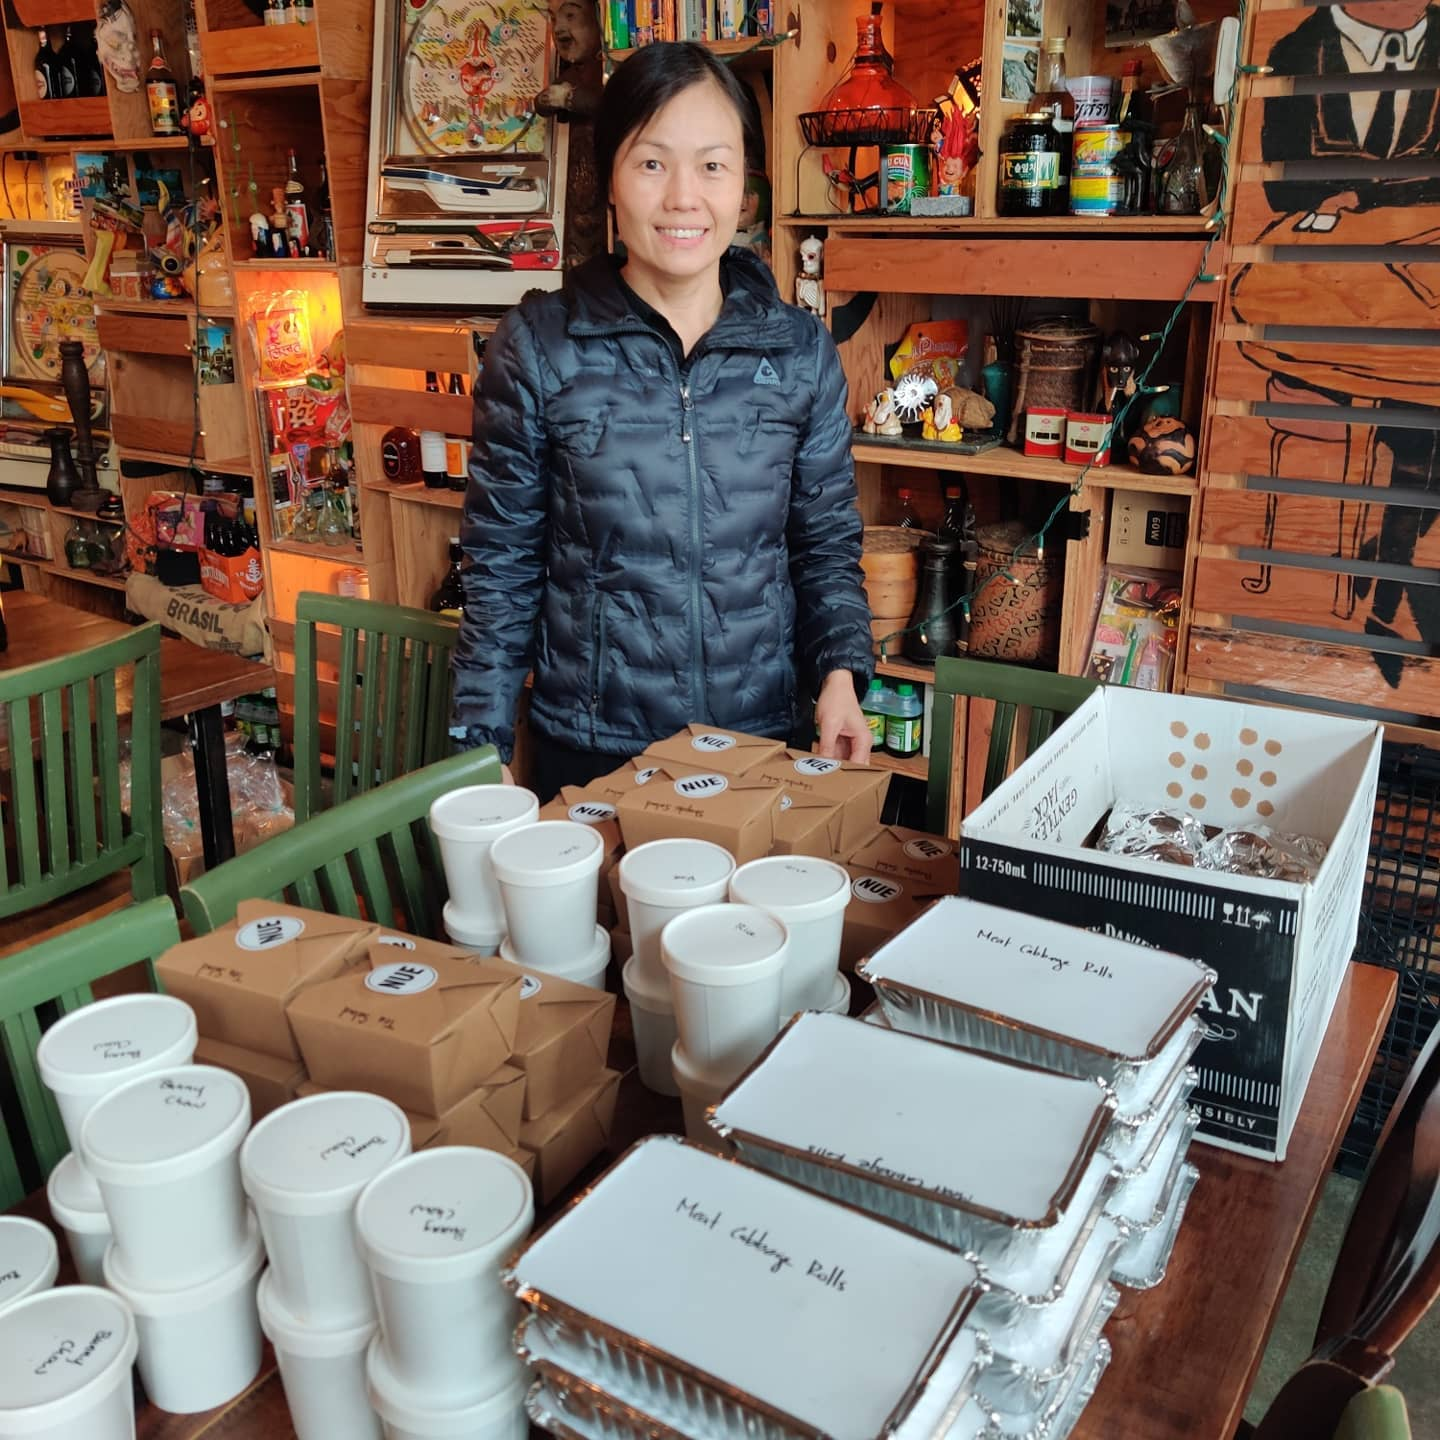 Nue co-owner Uyen Nguyen poses with donated food on its way to health care workers